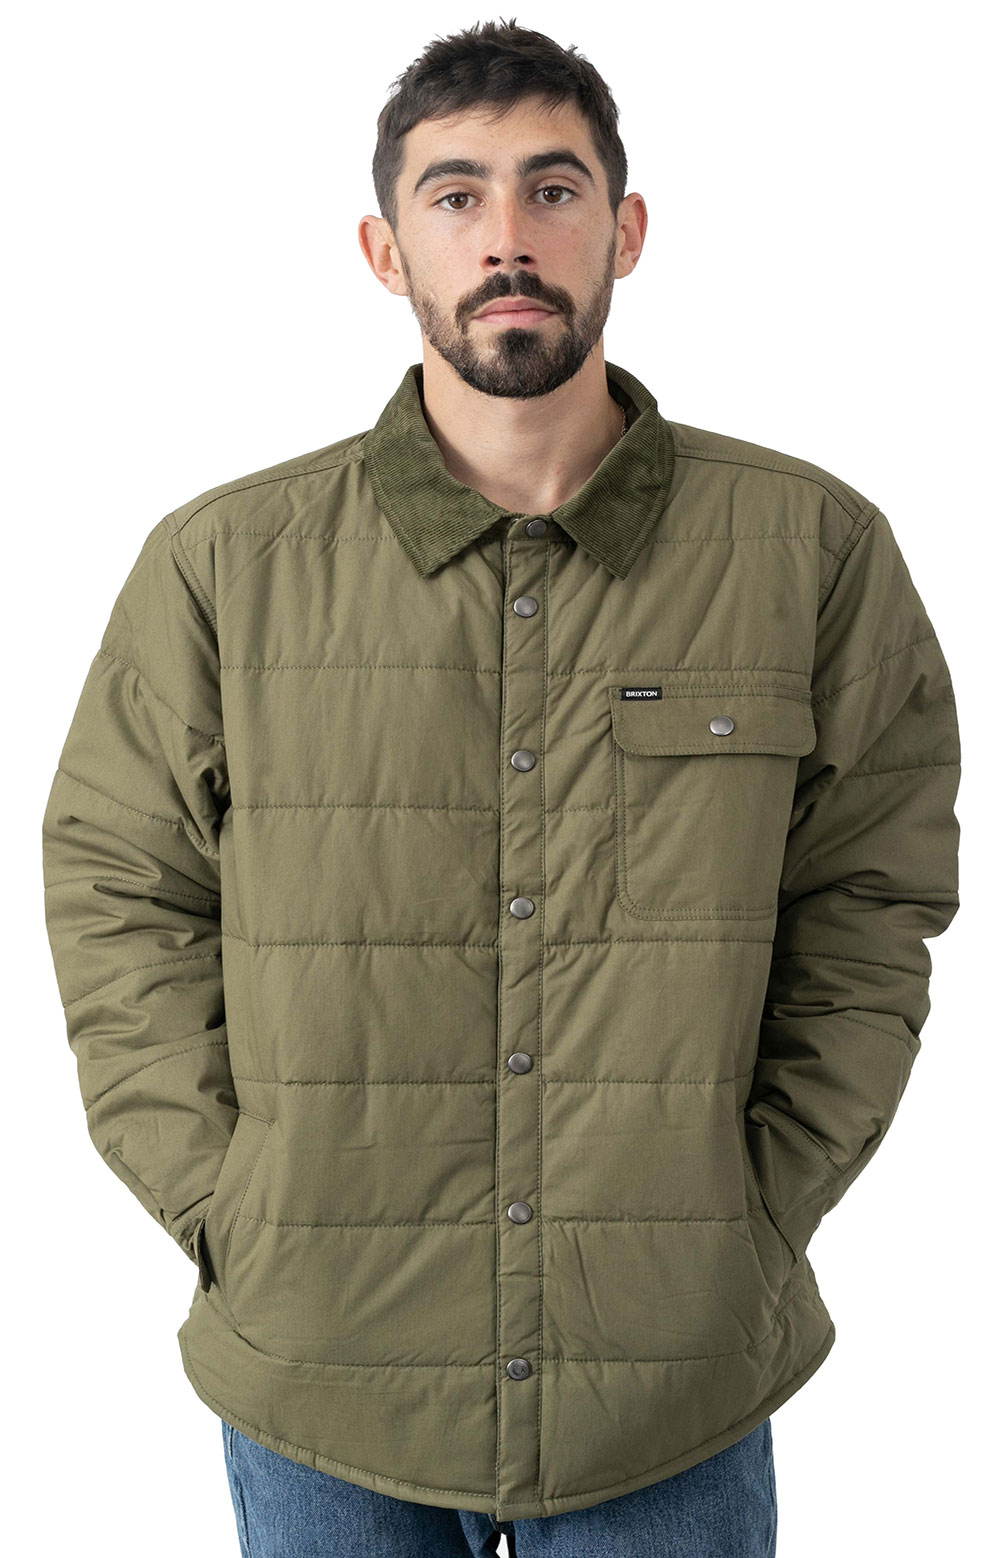 Cass Jacket - Military Olive